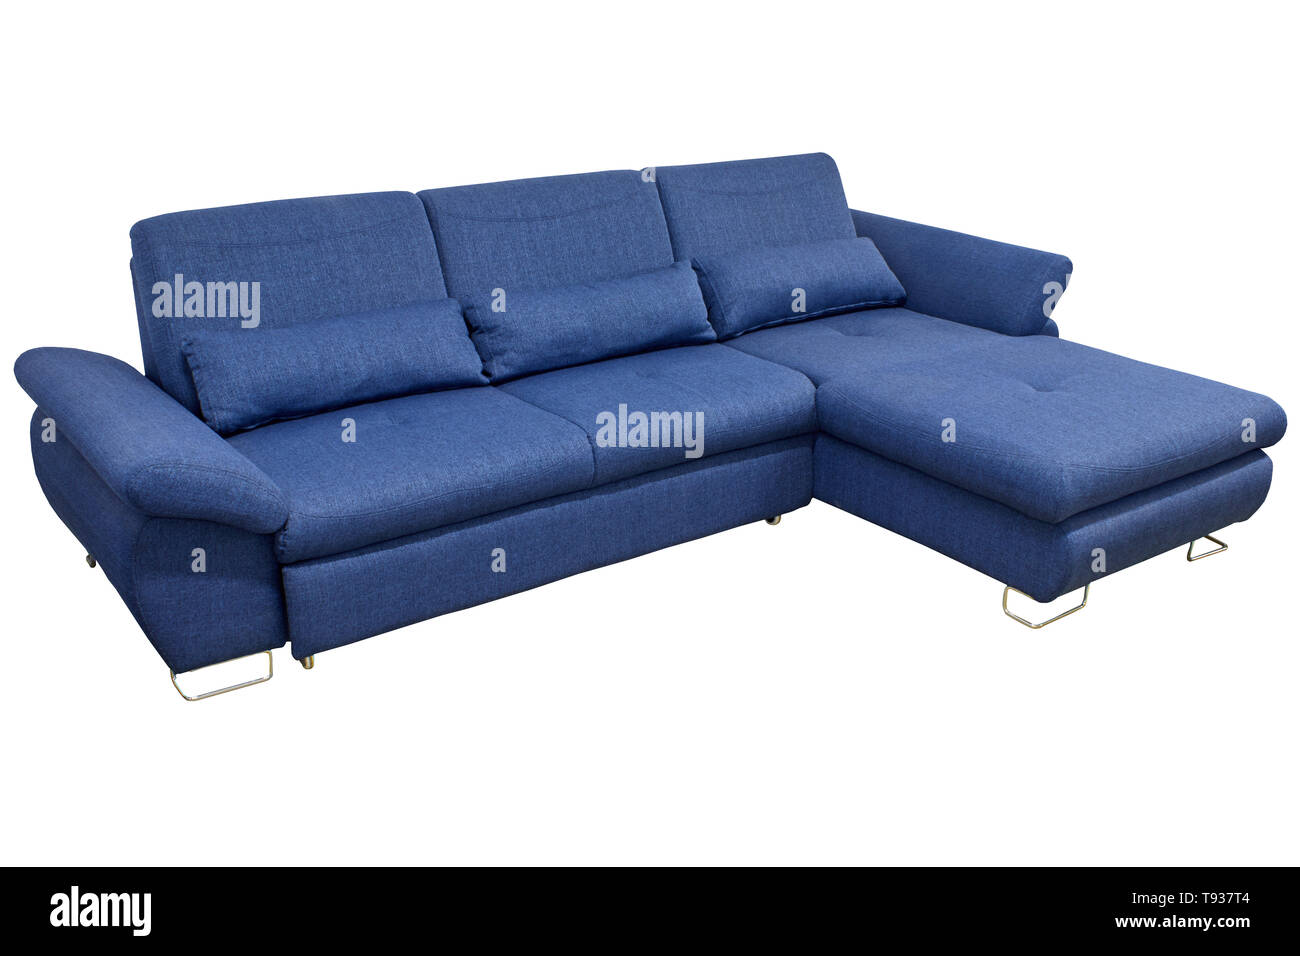 Awe Inspiring Modern Blue Large Cozy Fabric Sofa Corner With Pillows And Gamerscity Chair Design For Home Gamerscityorg